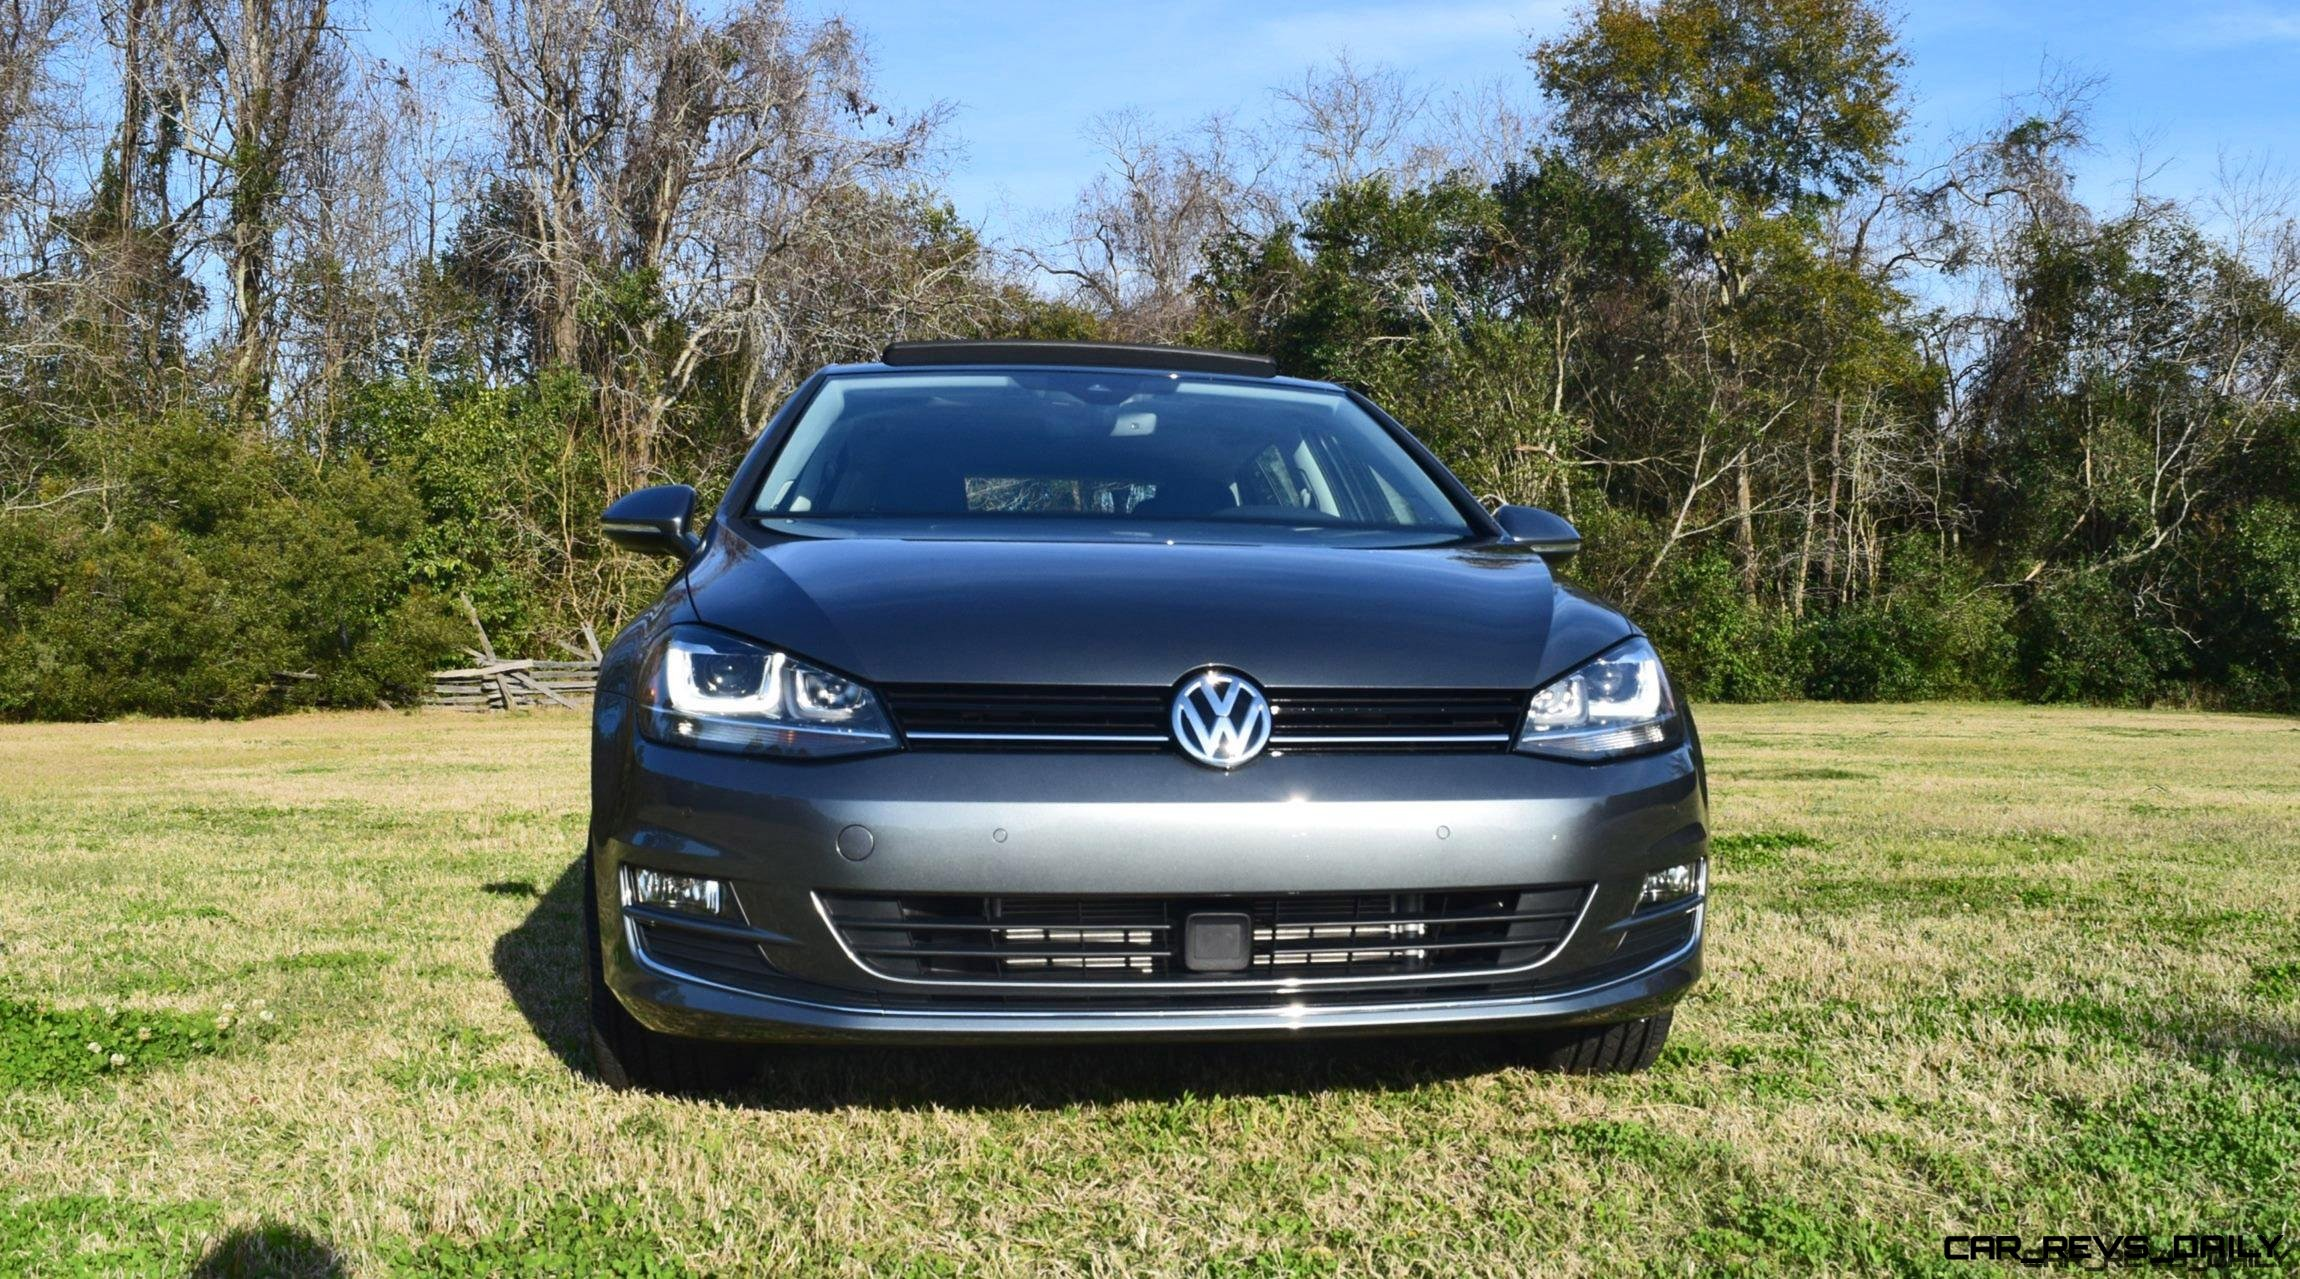 Three Tentpole Themes Define The Vw Golf Sel For 2017 Its Discreetly Sporty Drive Manners Intense Build Quality And How Might Be Sweet Spot